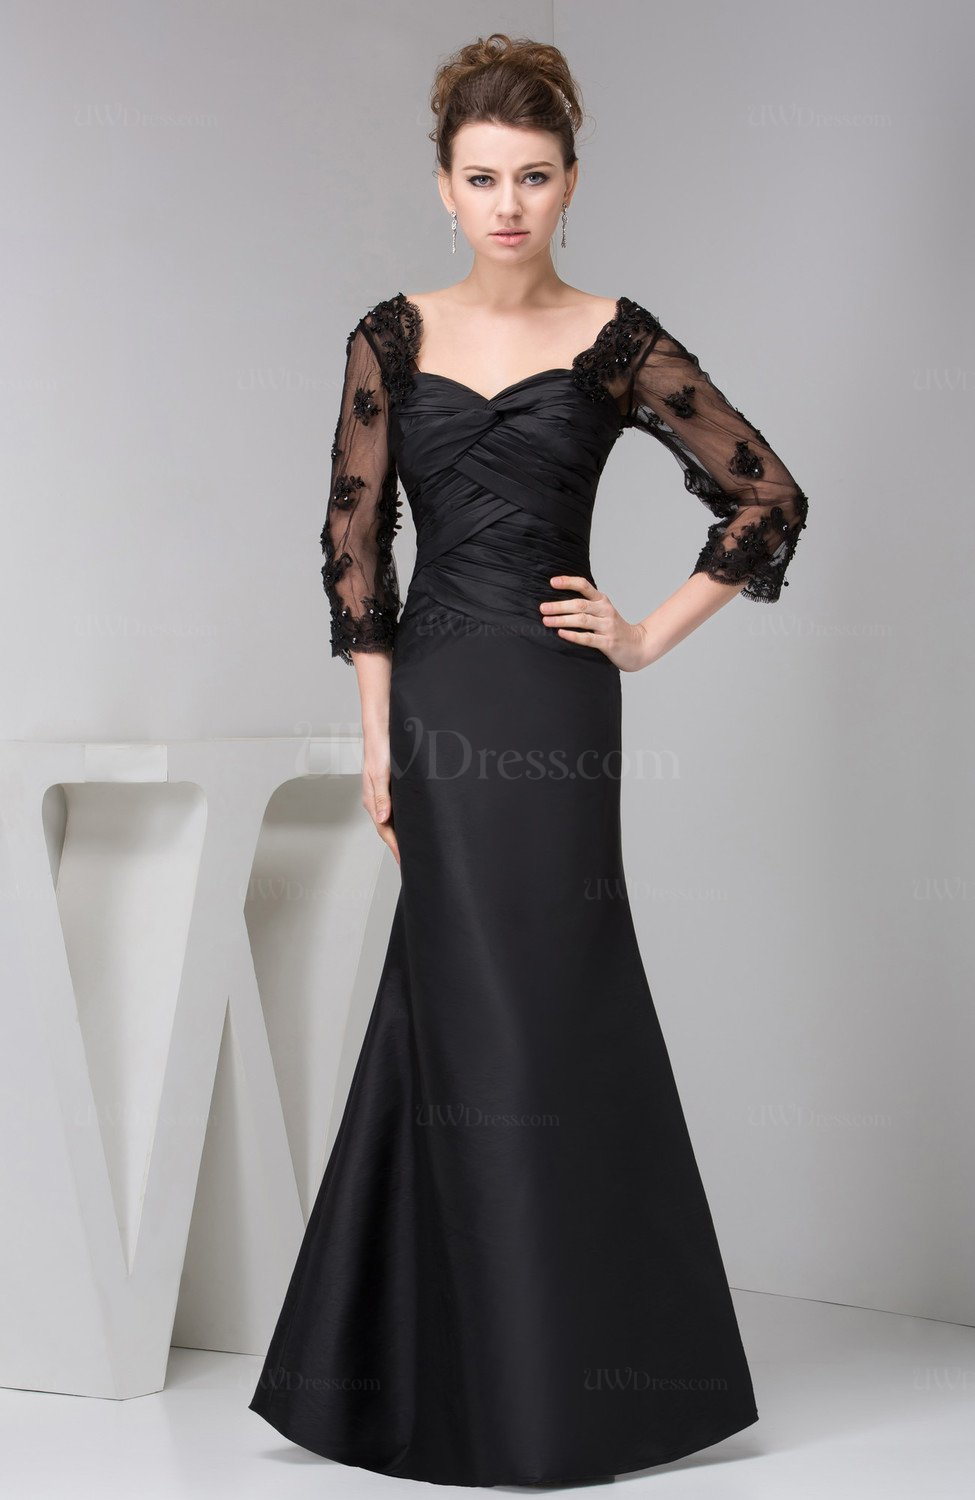 12 Awesome Formal Traditional: Black Long Sleeve Party Dress Lace Traditional Tight